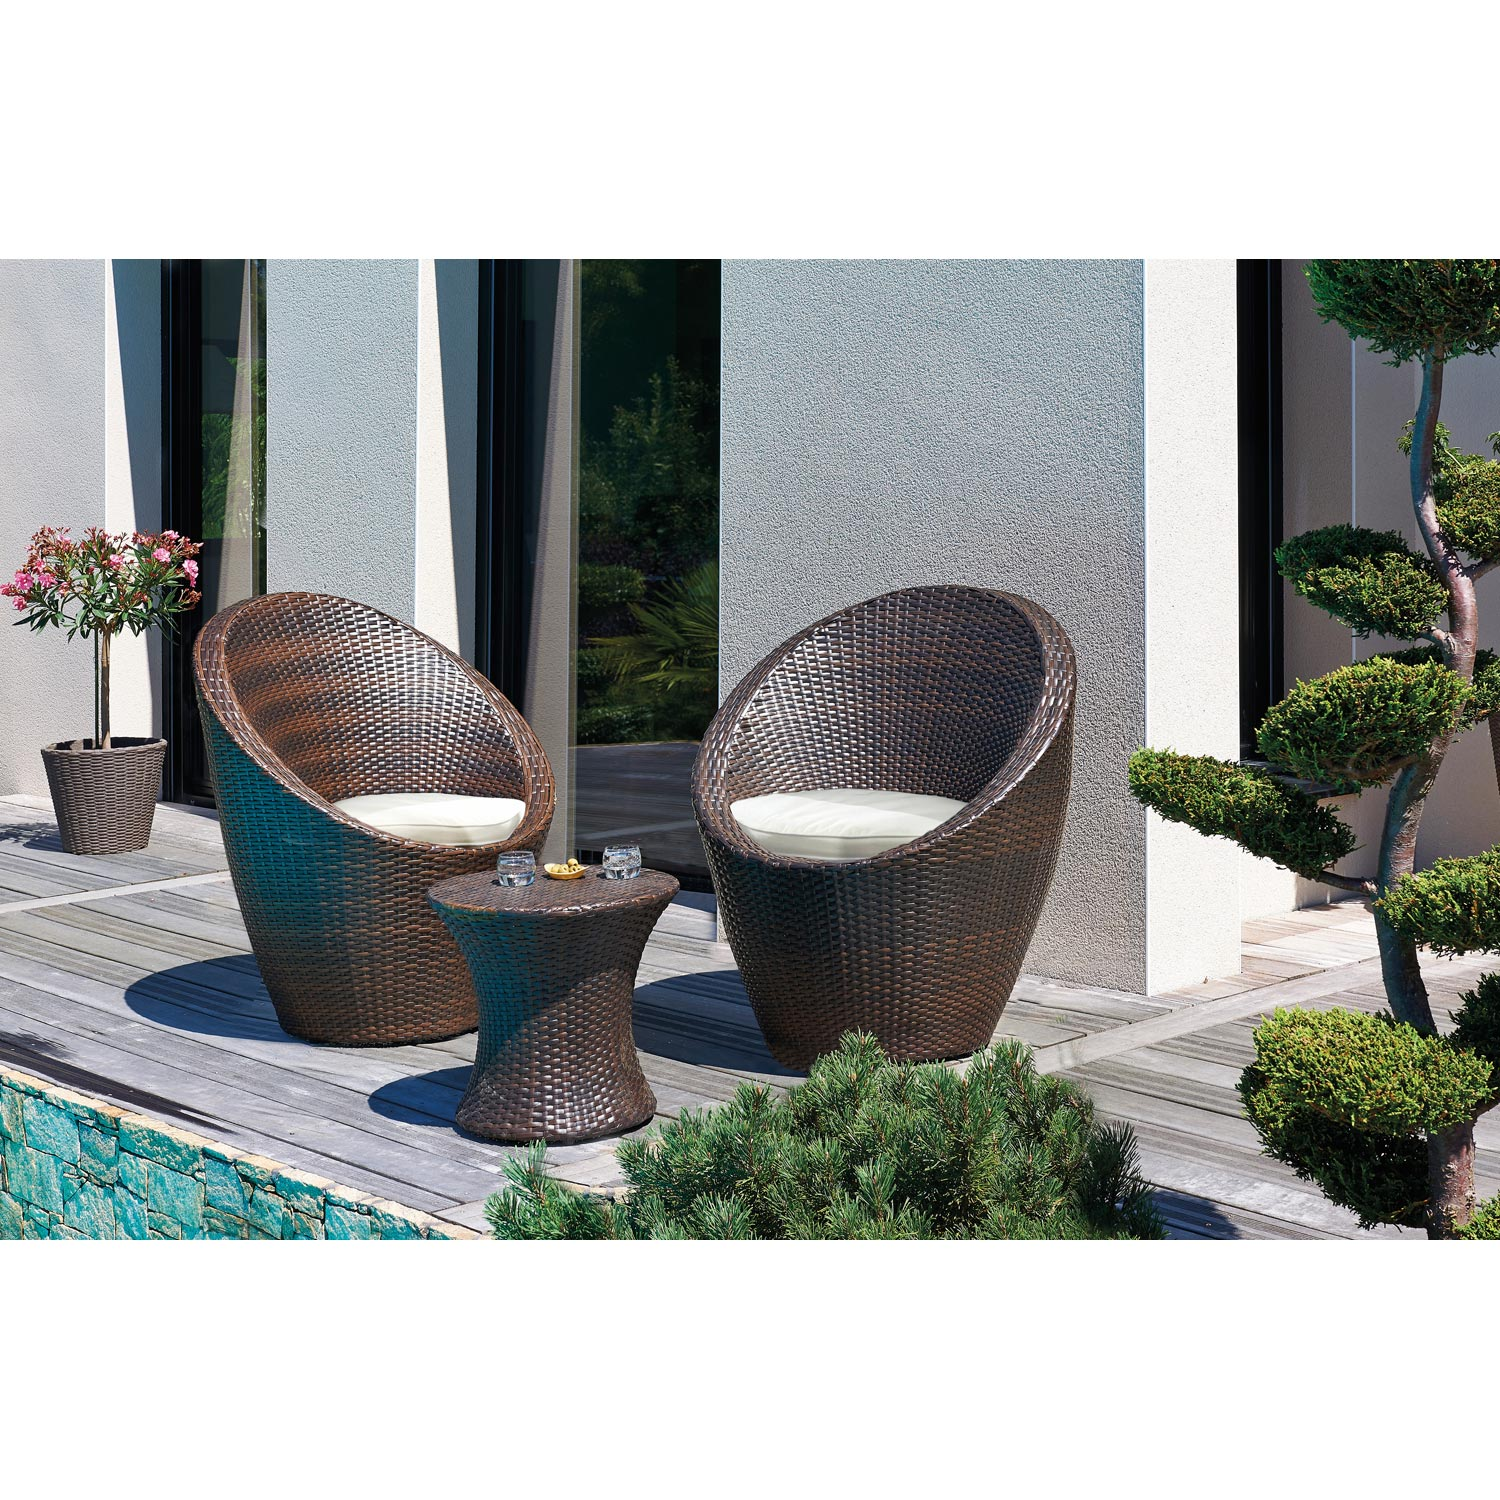 Salon Bas De Jardin Totem R Sine Tress E Chocolat 1 Table 2 Fauteuils Leroy Merlin